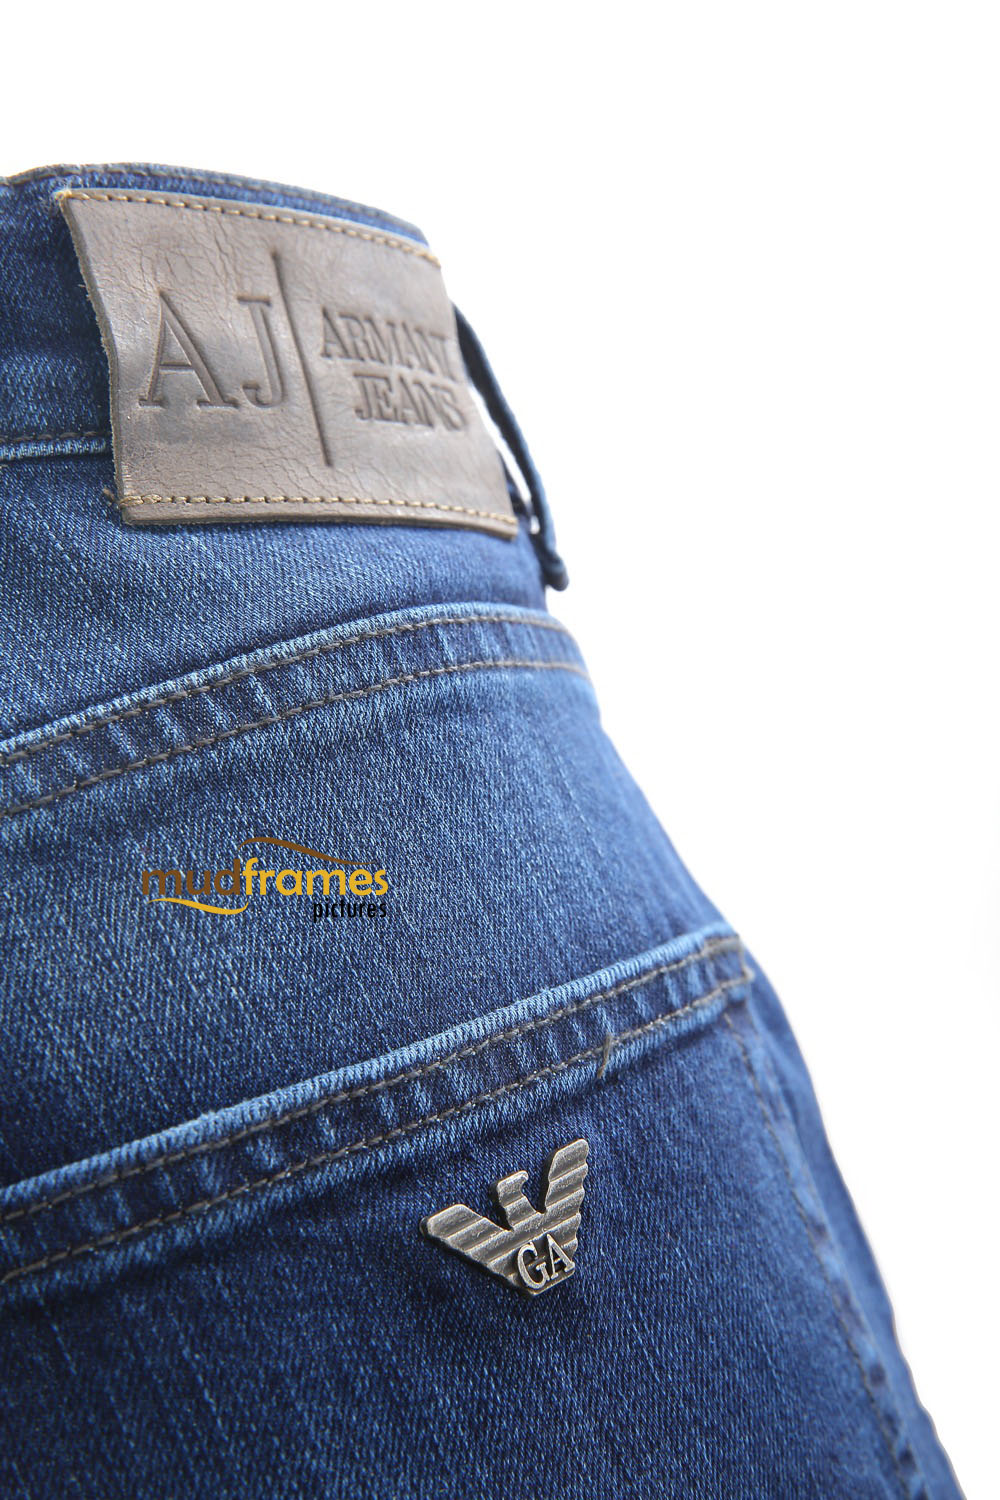 Blue Armani Jeans on white background